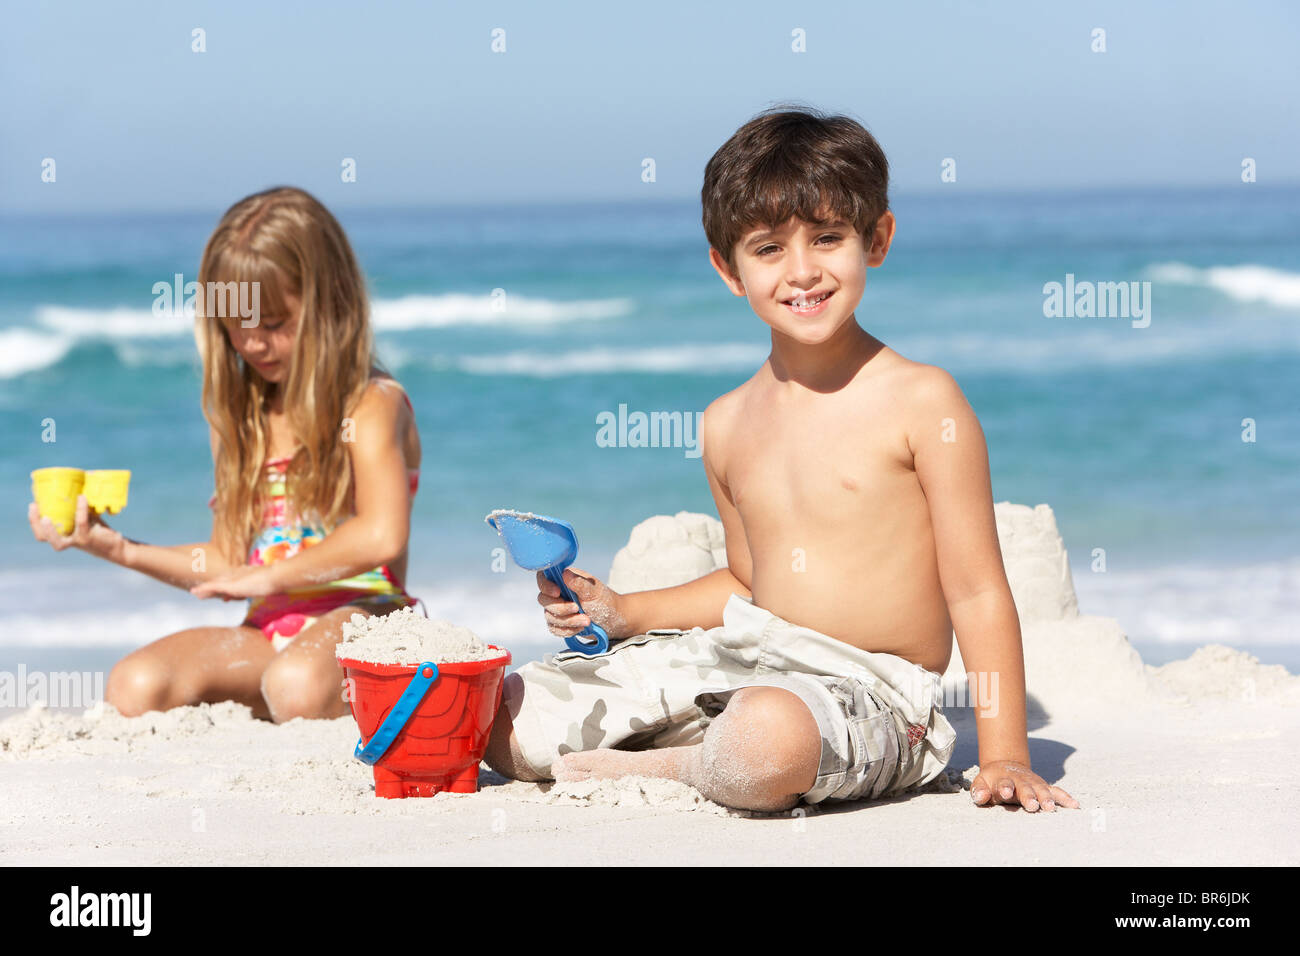 Children Building Sandcastles On Beach Holiday - Stock Image